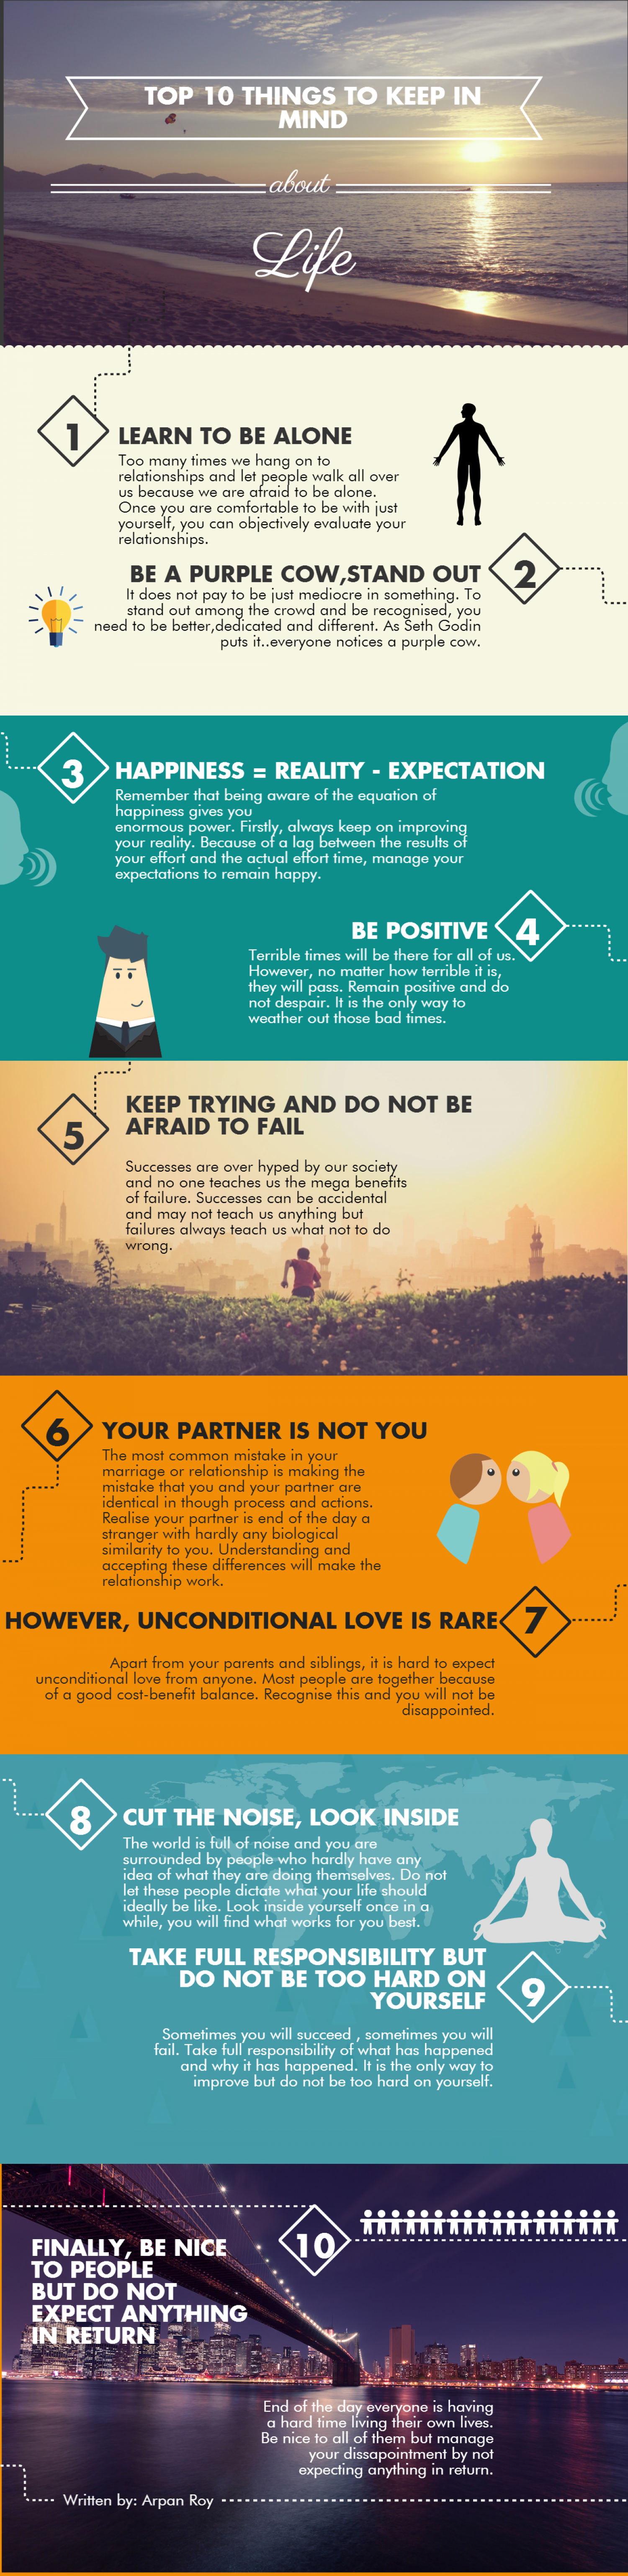 10 Things To Keep In Mind About Life Infographic